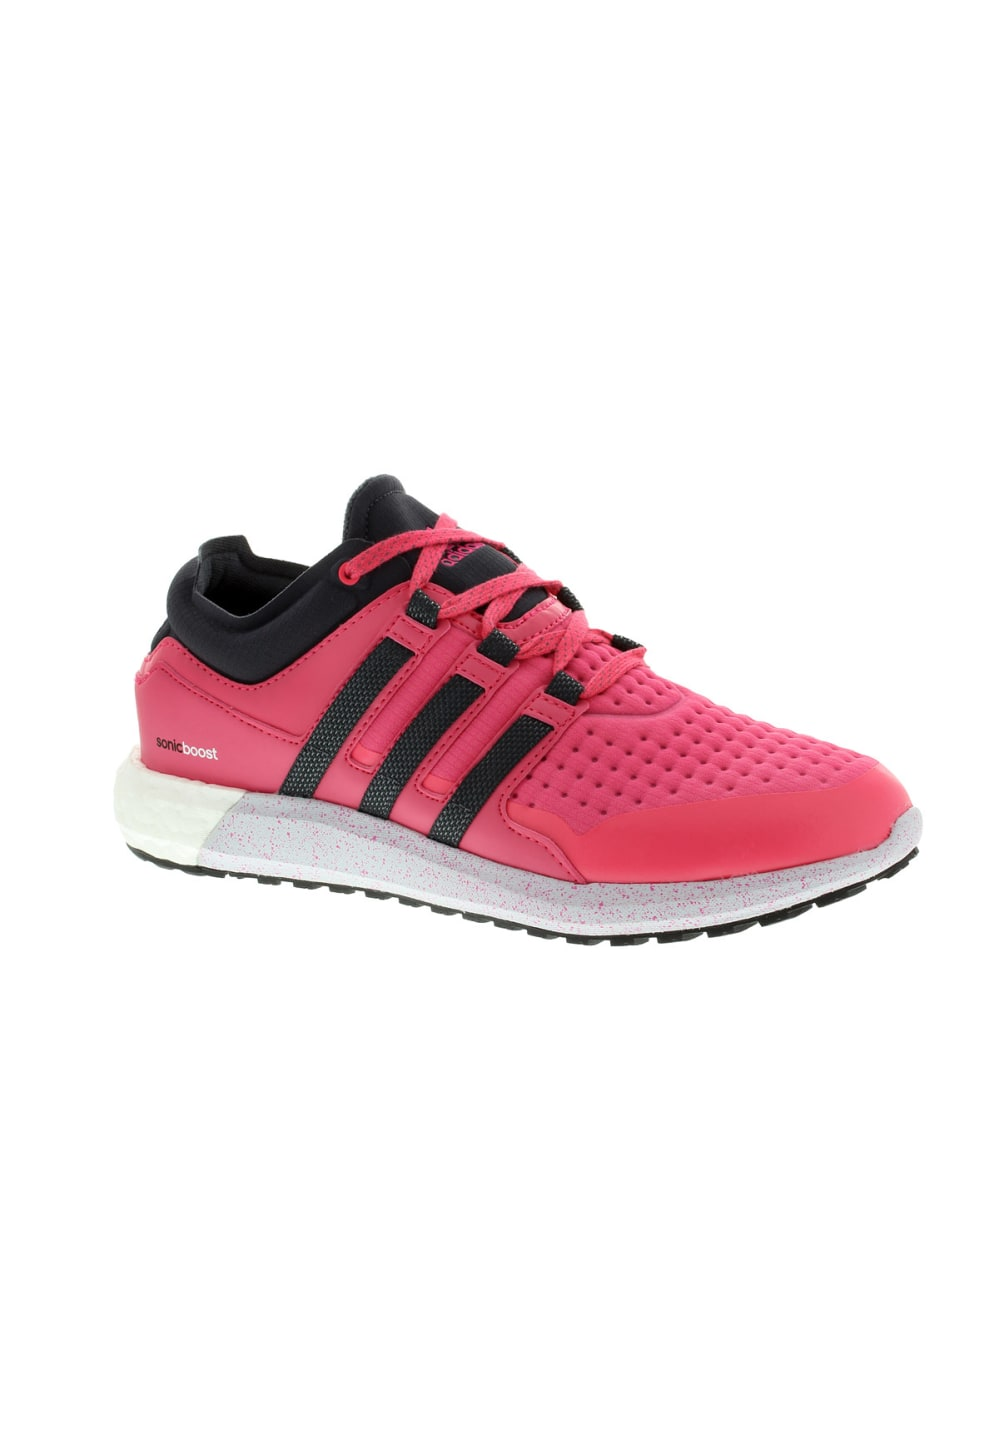 adidas sonic boost pink